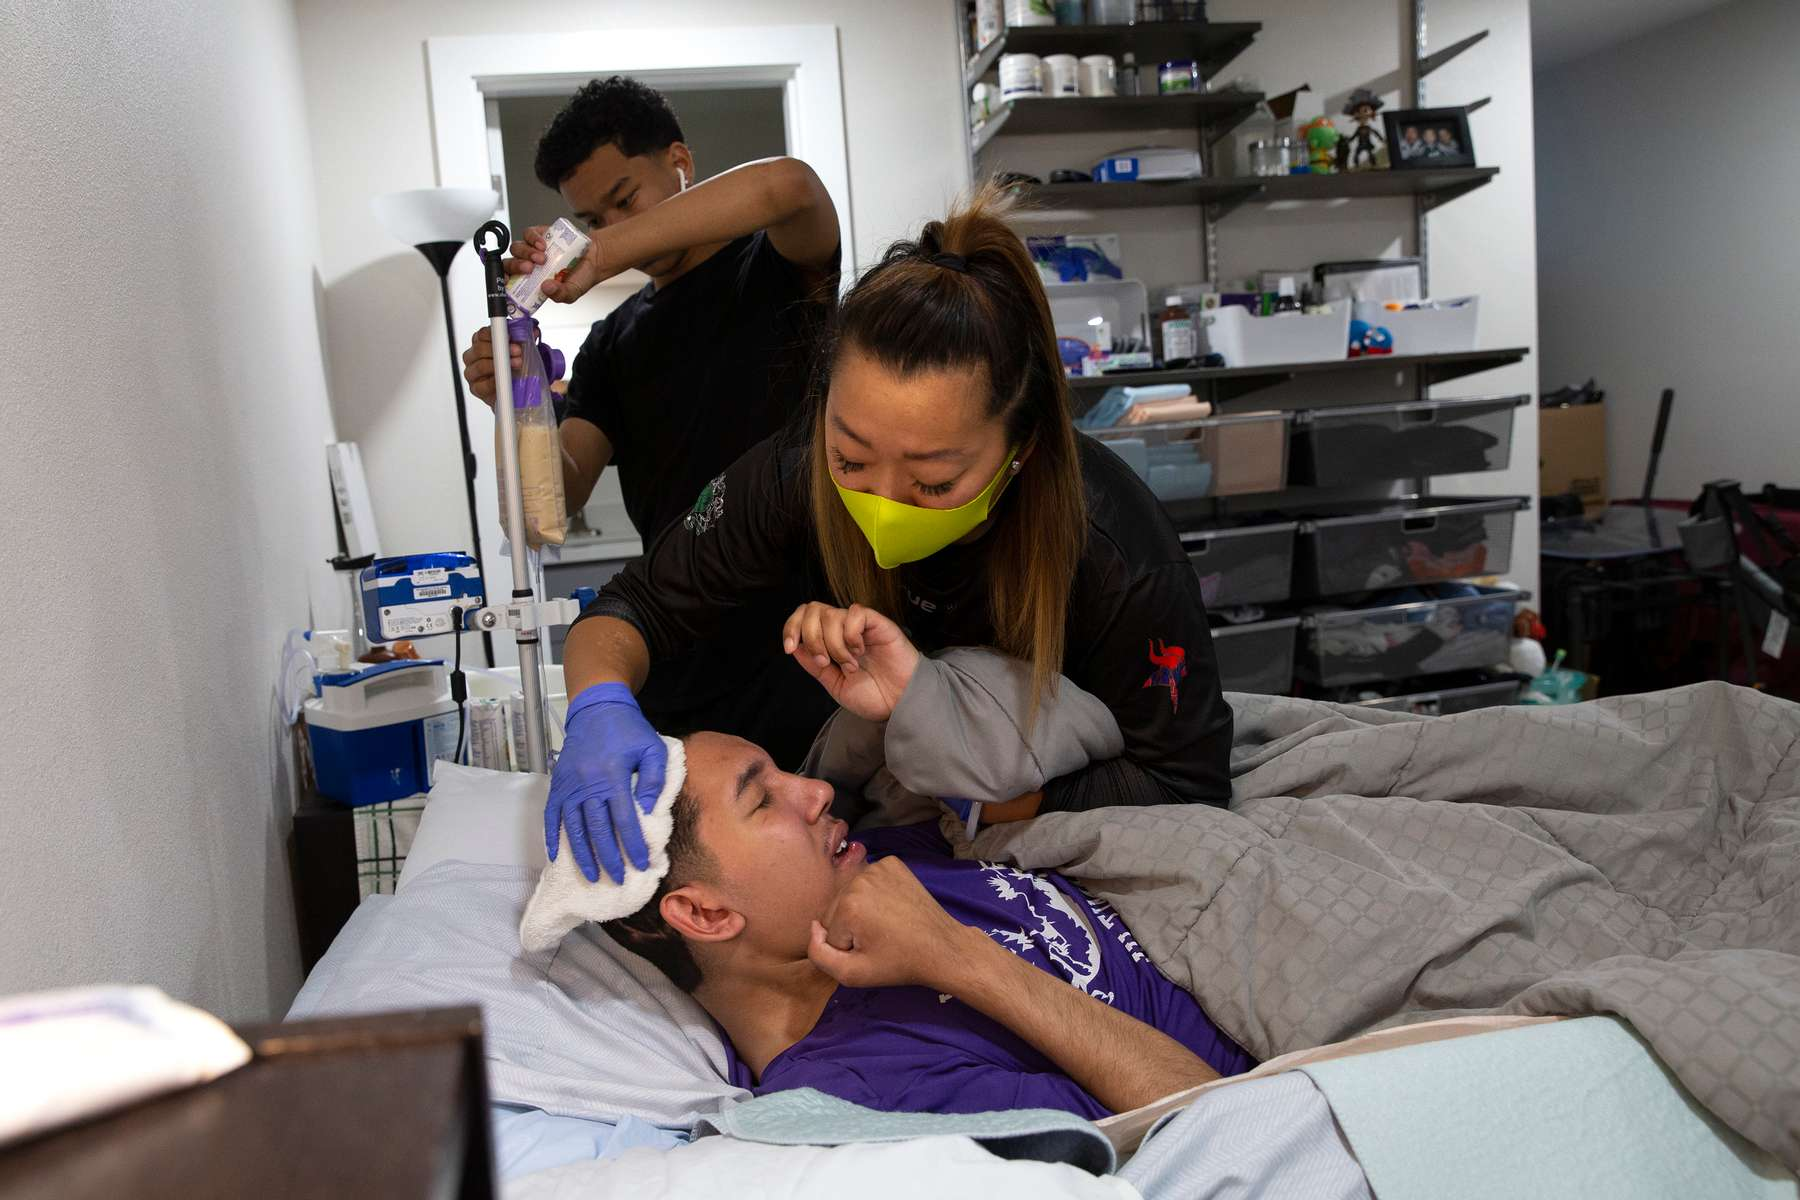 """Dawn Ung cares for her oldest son, Devin, 20, with assistance from her other son, Darin, 17, at their home in Seattle, Wash. on August 10, 2020. Devin was in a car accident several years ago that left him severely disabled from a traumatic brain injury. As a single mother, Dawn has to manage the needs of her three children, as well as, her job at the International Community Health Center, and worries she could bring Covid-19 into their home. """"There's always speed bumps. Nothing really goes as planned in my world, so I just take it as it comes. I think that's the only way I know how to deal with things without making me crazy. I'm surprised I haven't gone insane yet."""""""